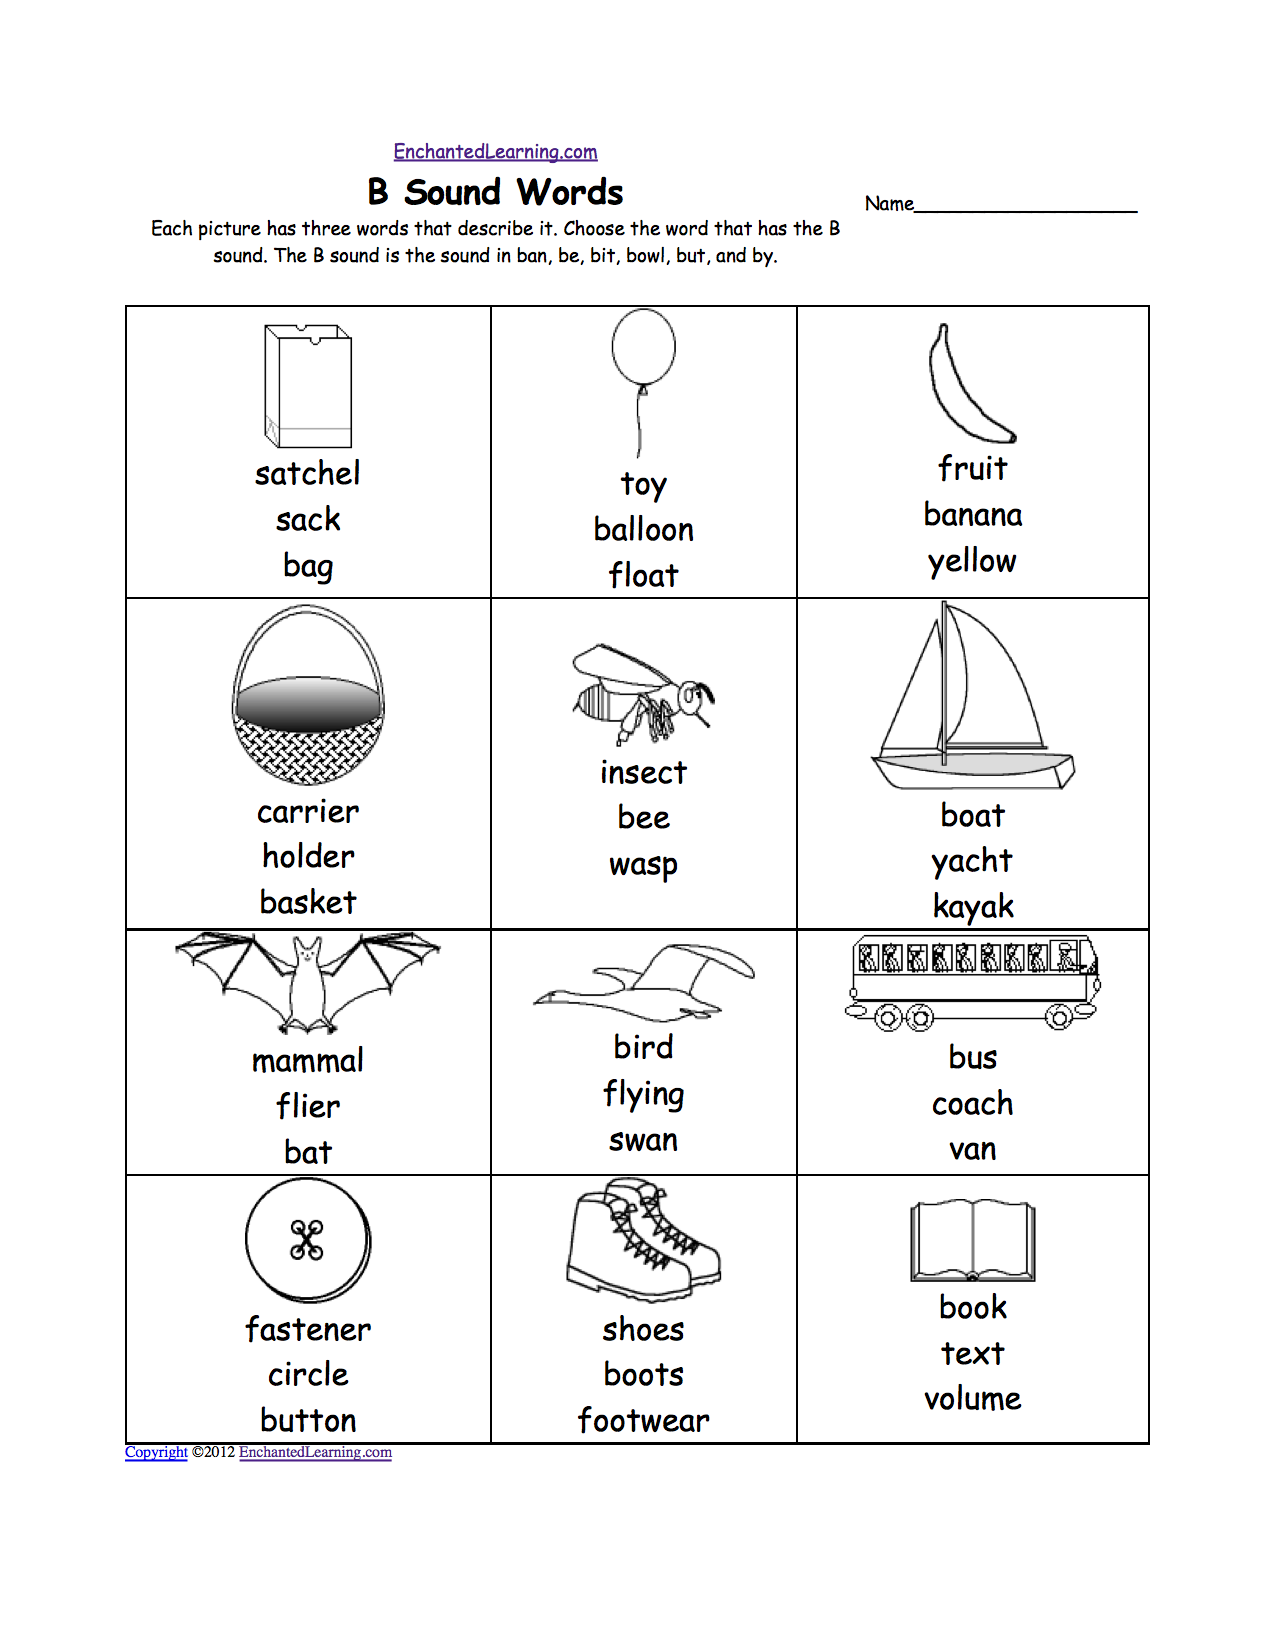 Aldiablosus  Mesmerizing Phonics Worksheets Multiple Choice Worksheets To Print  With Interesting Quotbquot Sound Phonics Worksheet Multiple Choice Each Picture Has Three Words That Describe It Choose The Word That Has A Quotbquot Sound The Quotbquot Sound Is The Sound  With Delightful Math Angles Worksheet Also Gcf Word Problems Worksheets In Addition Th Grade Test Prep Worksheets And Journal Worksheets As Well As Graphs Of Trigonometric Functions Worksheet Additionally Math Equation Worksheets From Enchantedlearningcom With Aldiablosus  Interesting Phonics Worksheets Multiple Choice Worksheets To Print  With Delightful Quotbquot Sound Phonics Worksheet Multiple Choice Each Picture Has Three Words That Describe It Choose The Word That Has A Quotbquot Sound The Quotbquot Sound Is The Sound  And Mesmerizing Math Angles Worksheet Also Gcf Word Problems Worksheets In Addition Th Grade Test Prep Worksheets From Enchantedlearningcom